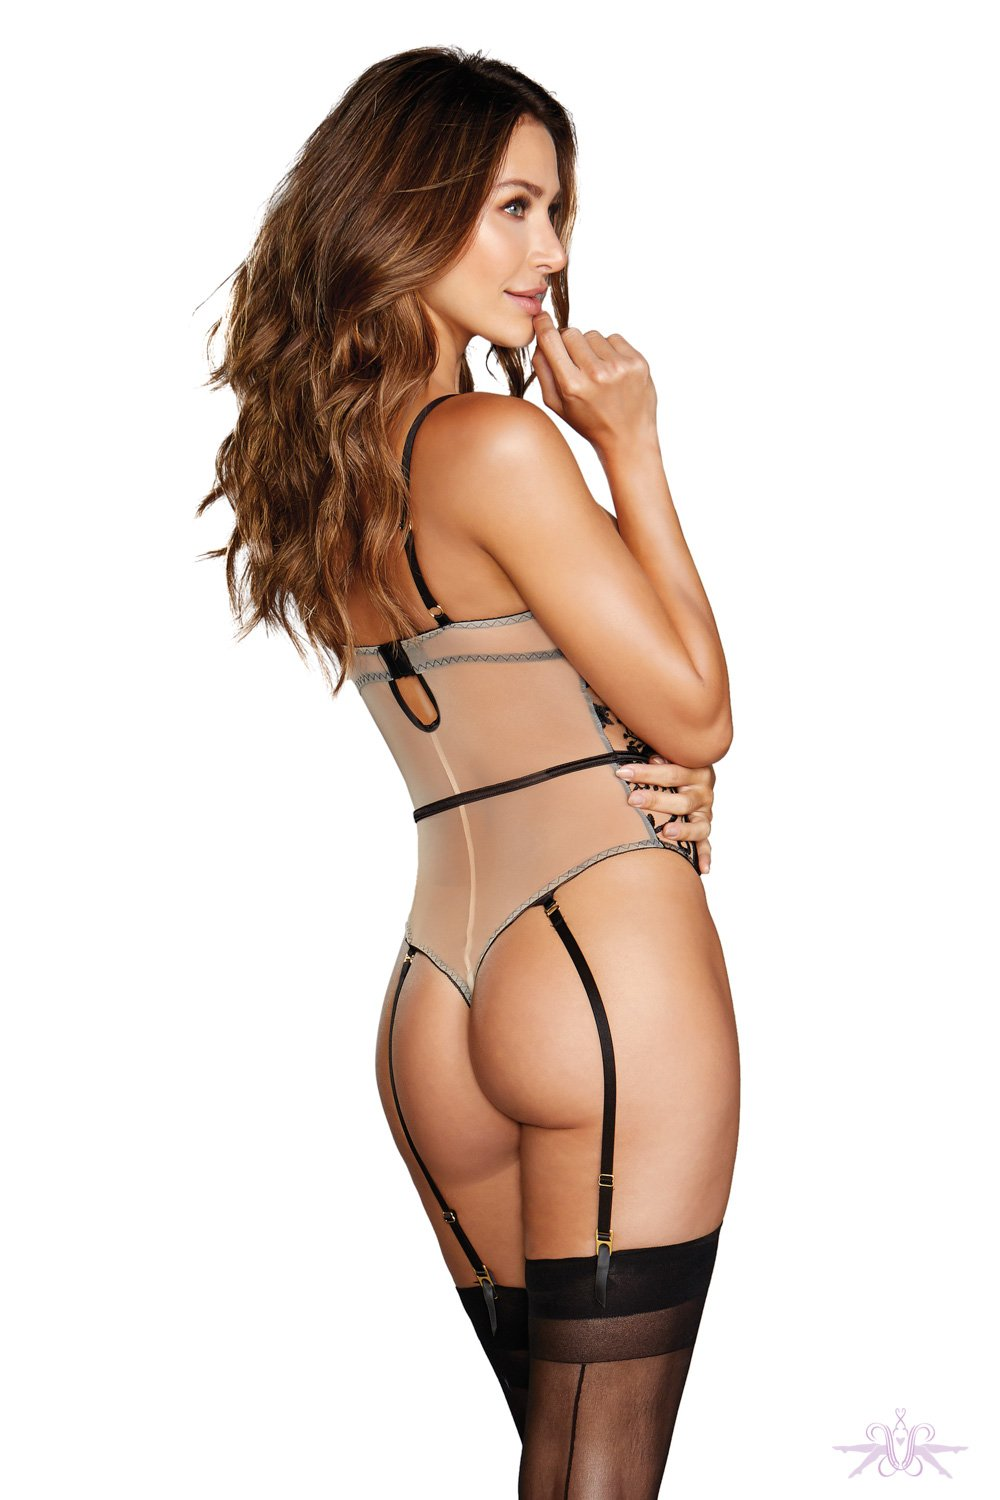 Sheer Black/Nude Lace Body with Suspenders